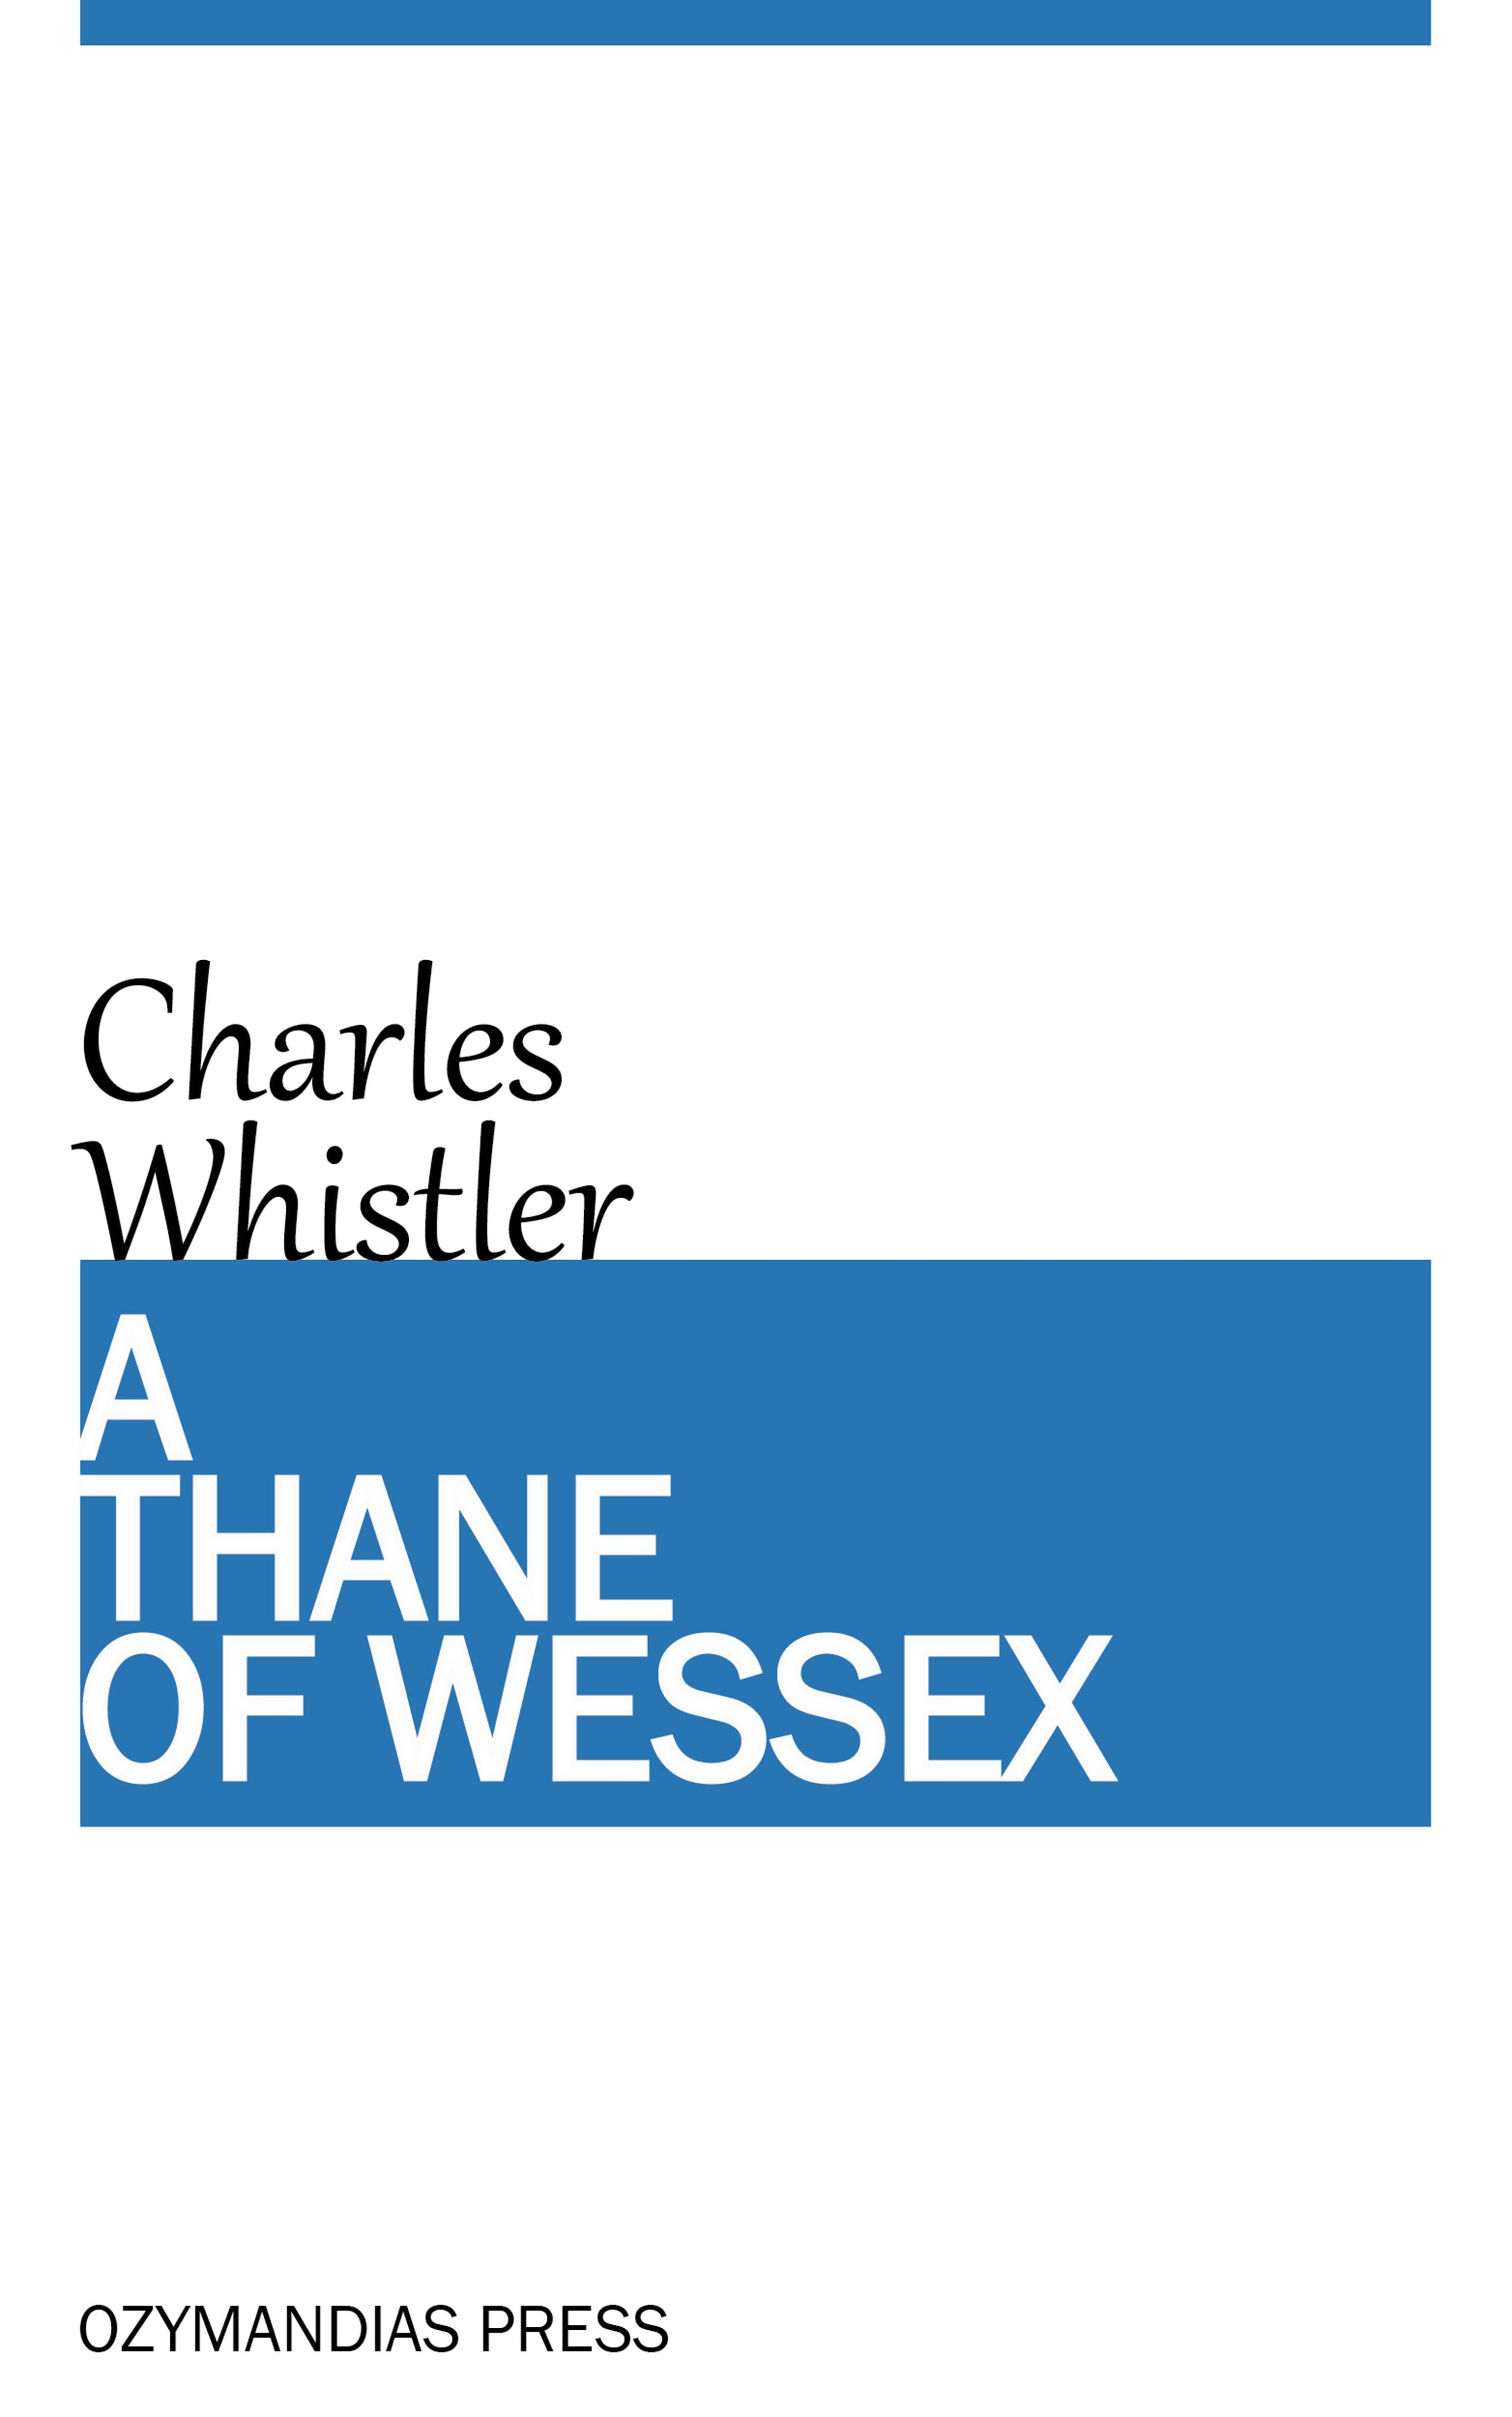 цена на Charles Whistler A Thane of Wessex